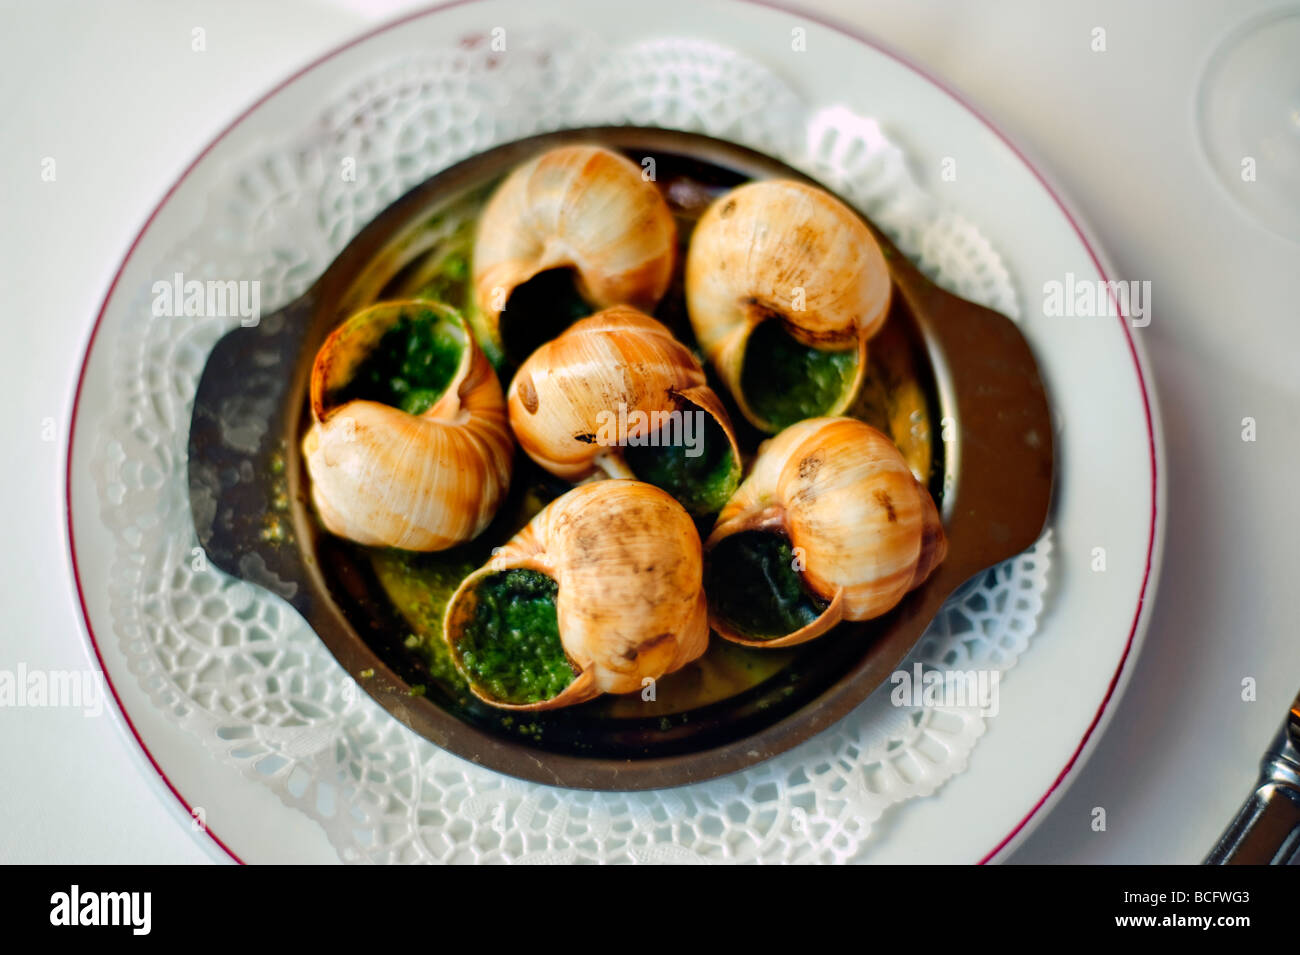 Paris France, French Brasserie Restaurant 'Le Grand Colbert', Detail French Food on a Plate 6 Snails - Stock Image